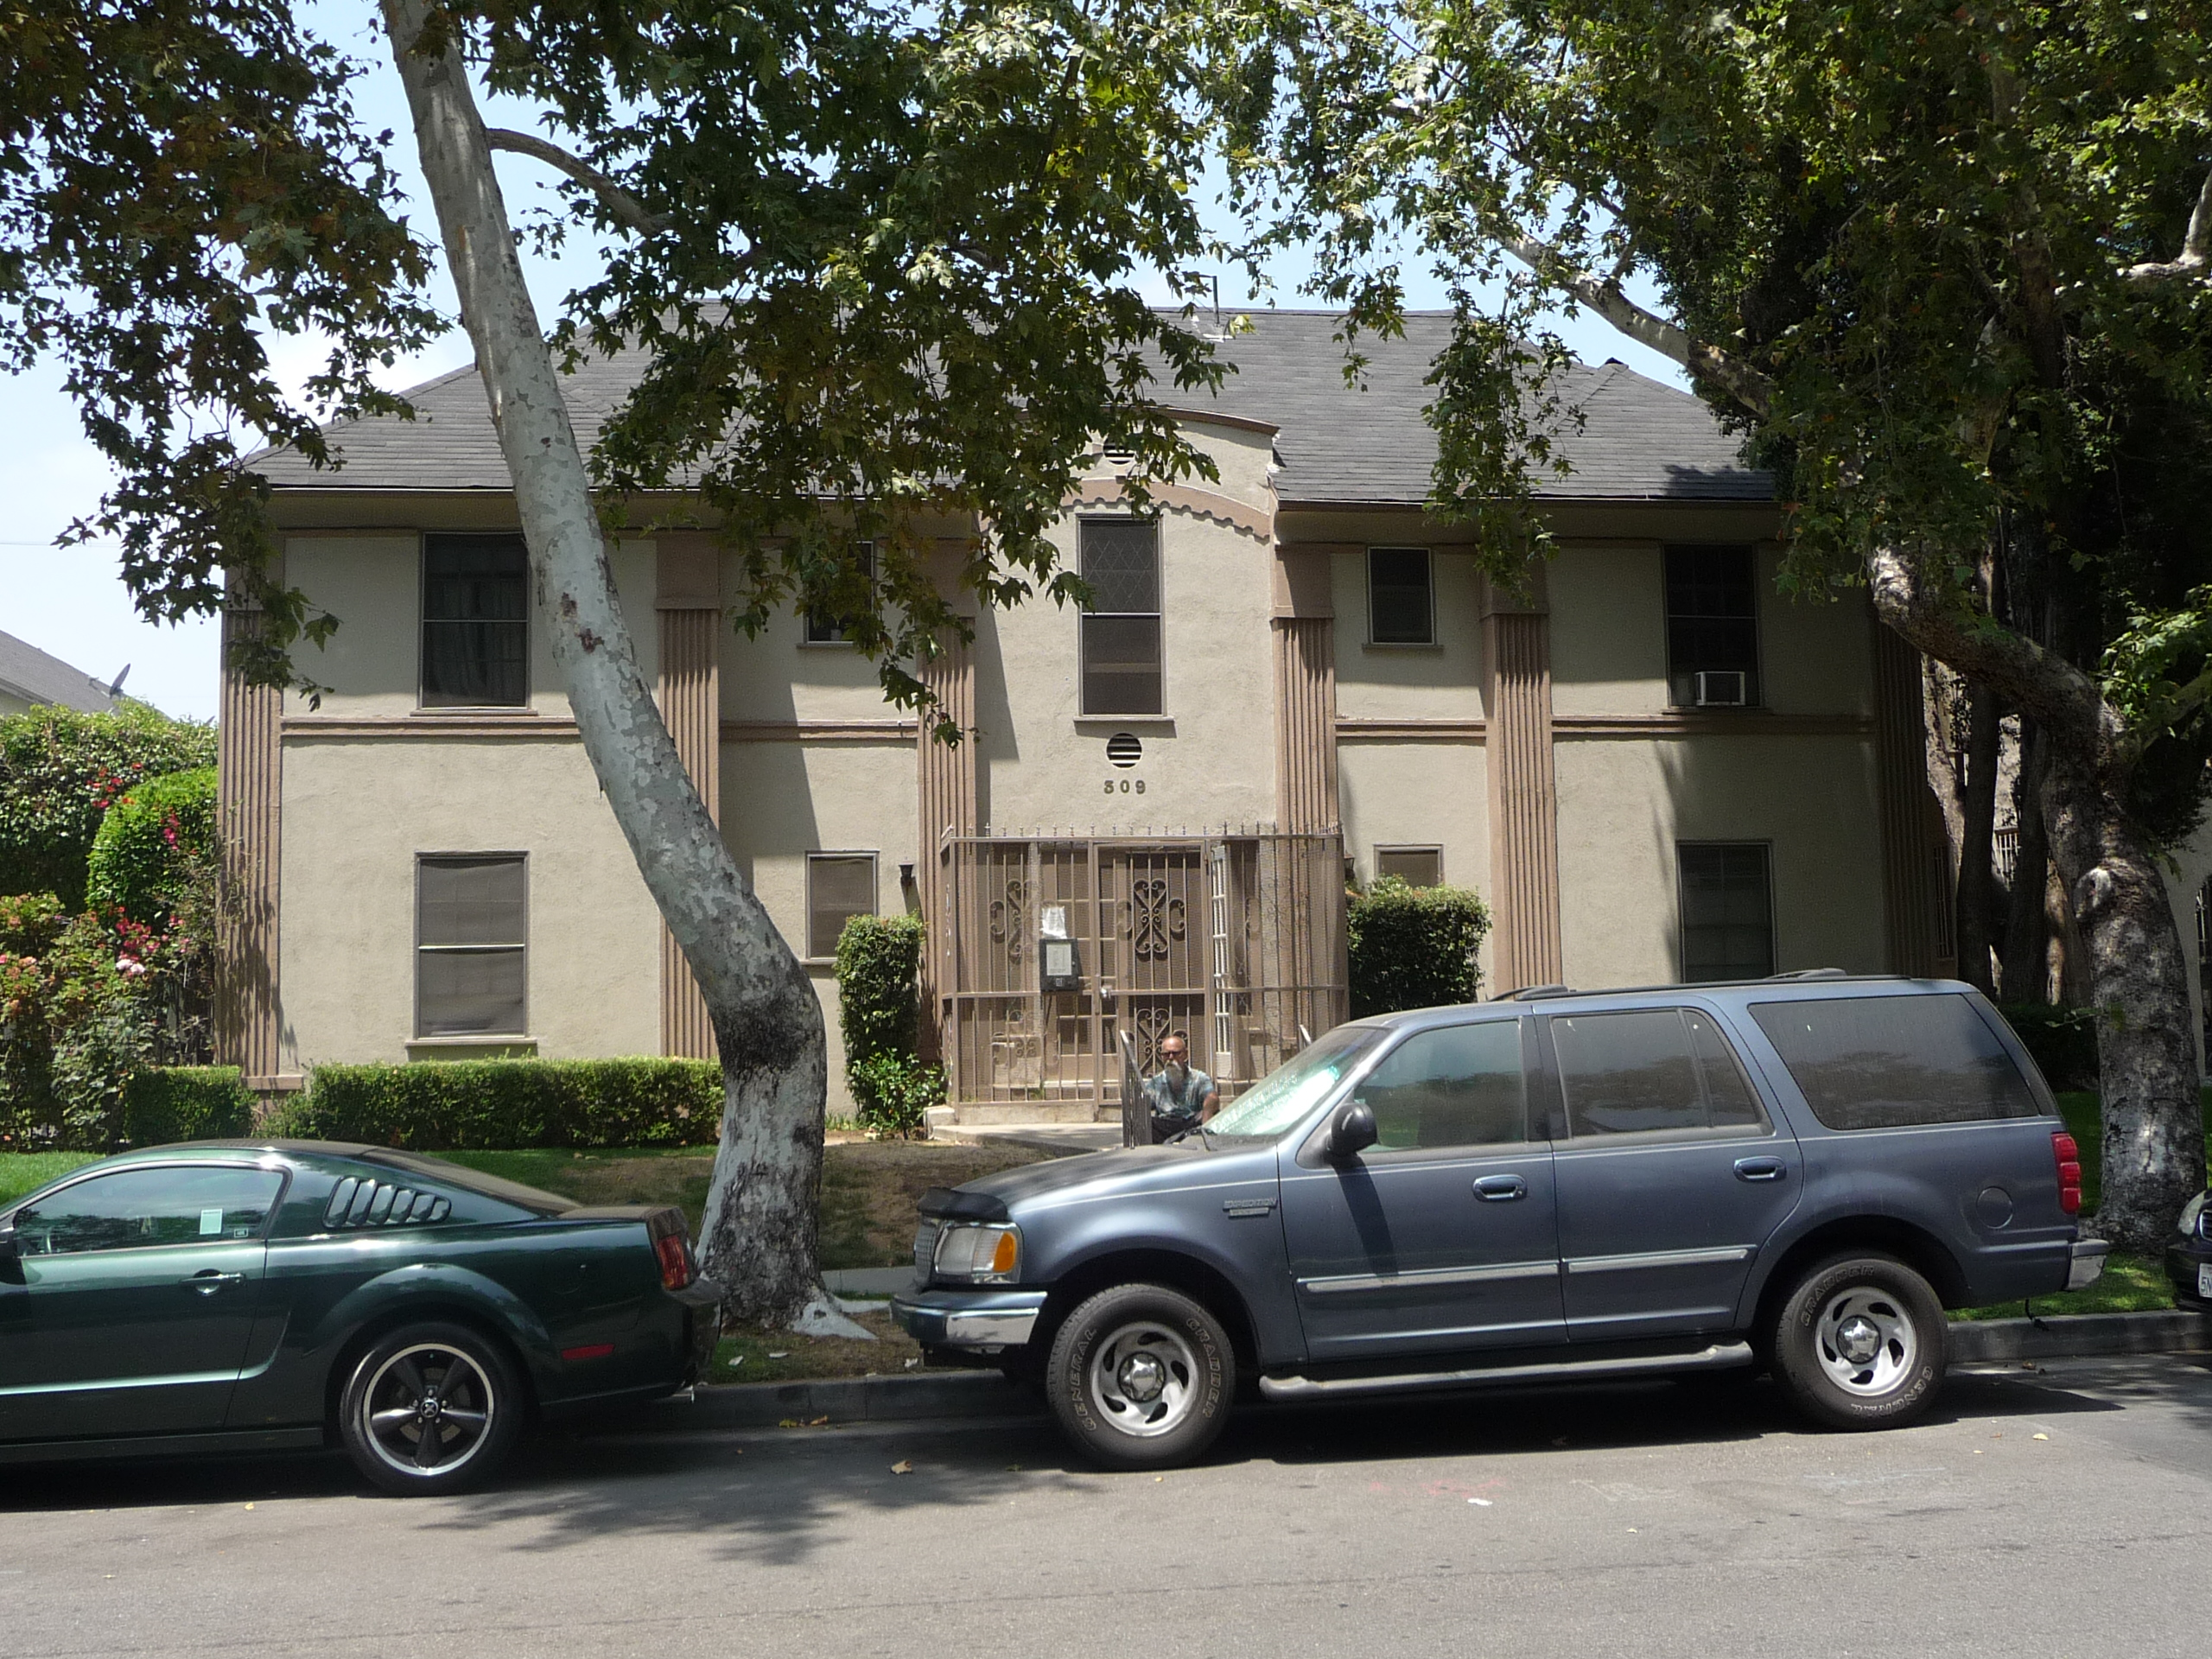 309 N SYCAMORE AVE - PHOTO